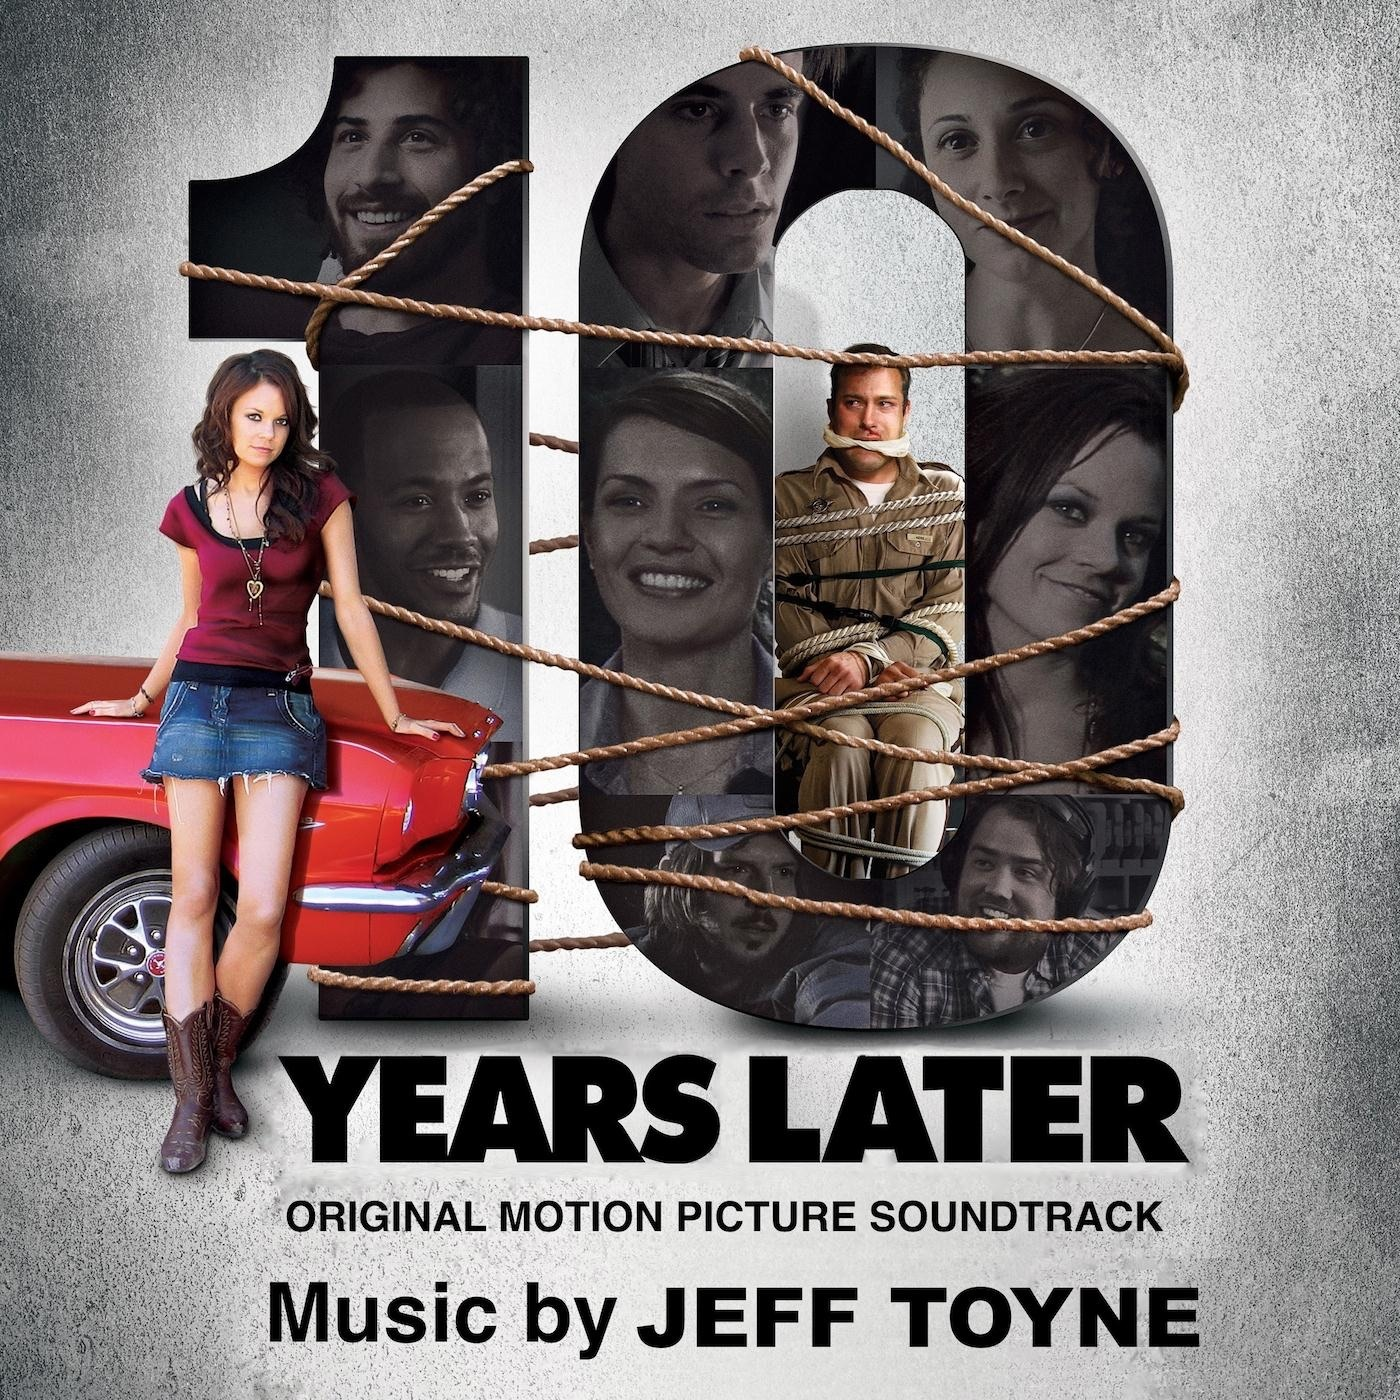 Ten Years Later (Original Motion Picture Soundtrack)